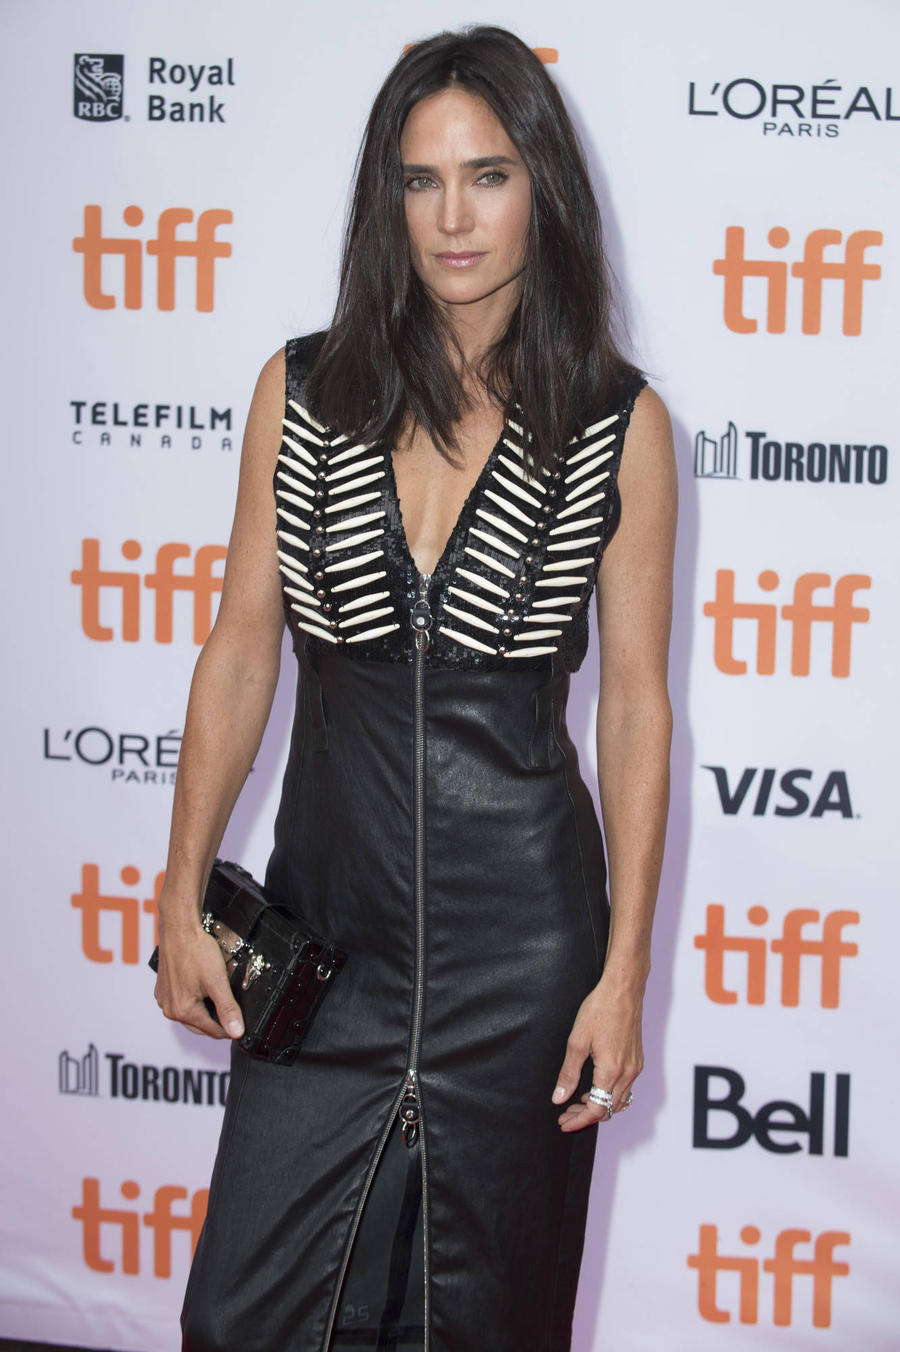 Jennifer Connelly 'Haggled For A Smaller Pubic Wig' On Movie American Pastoral